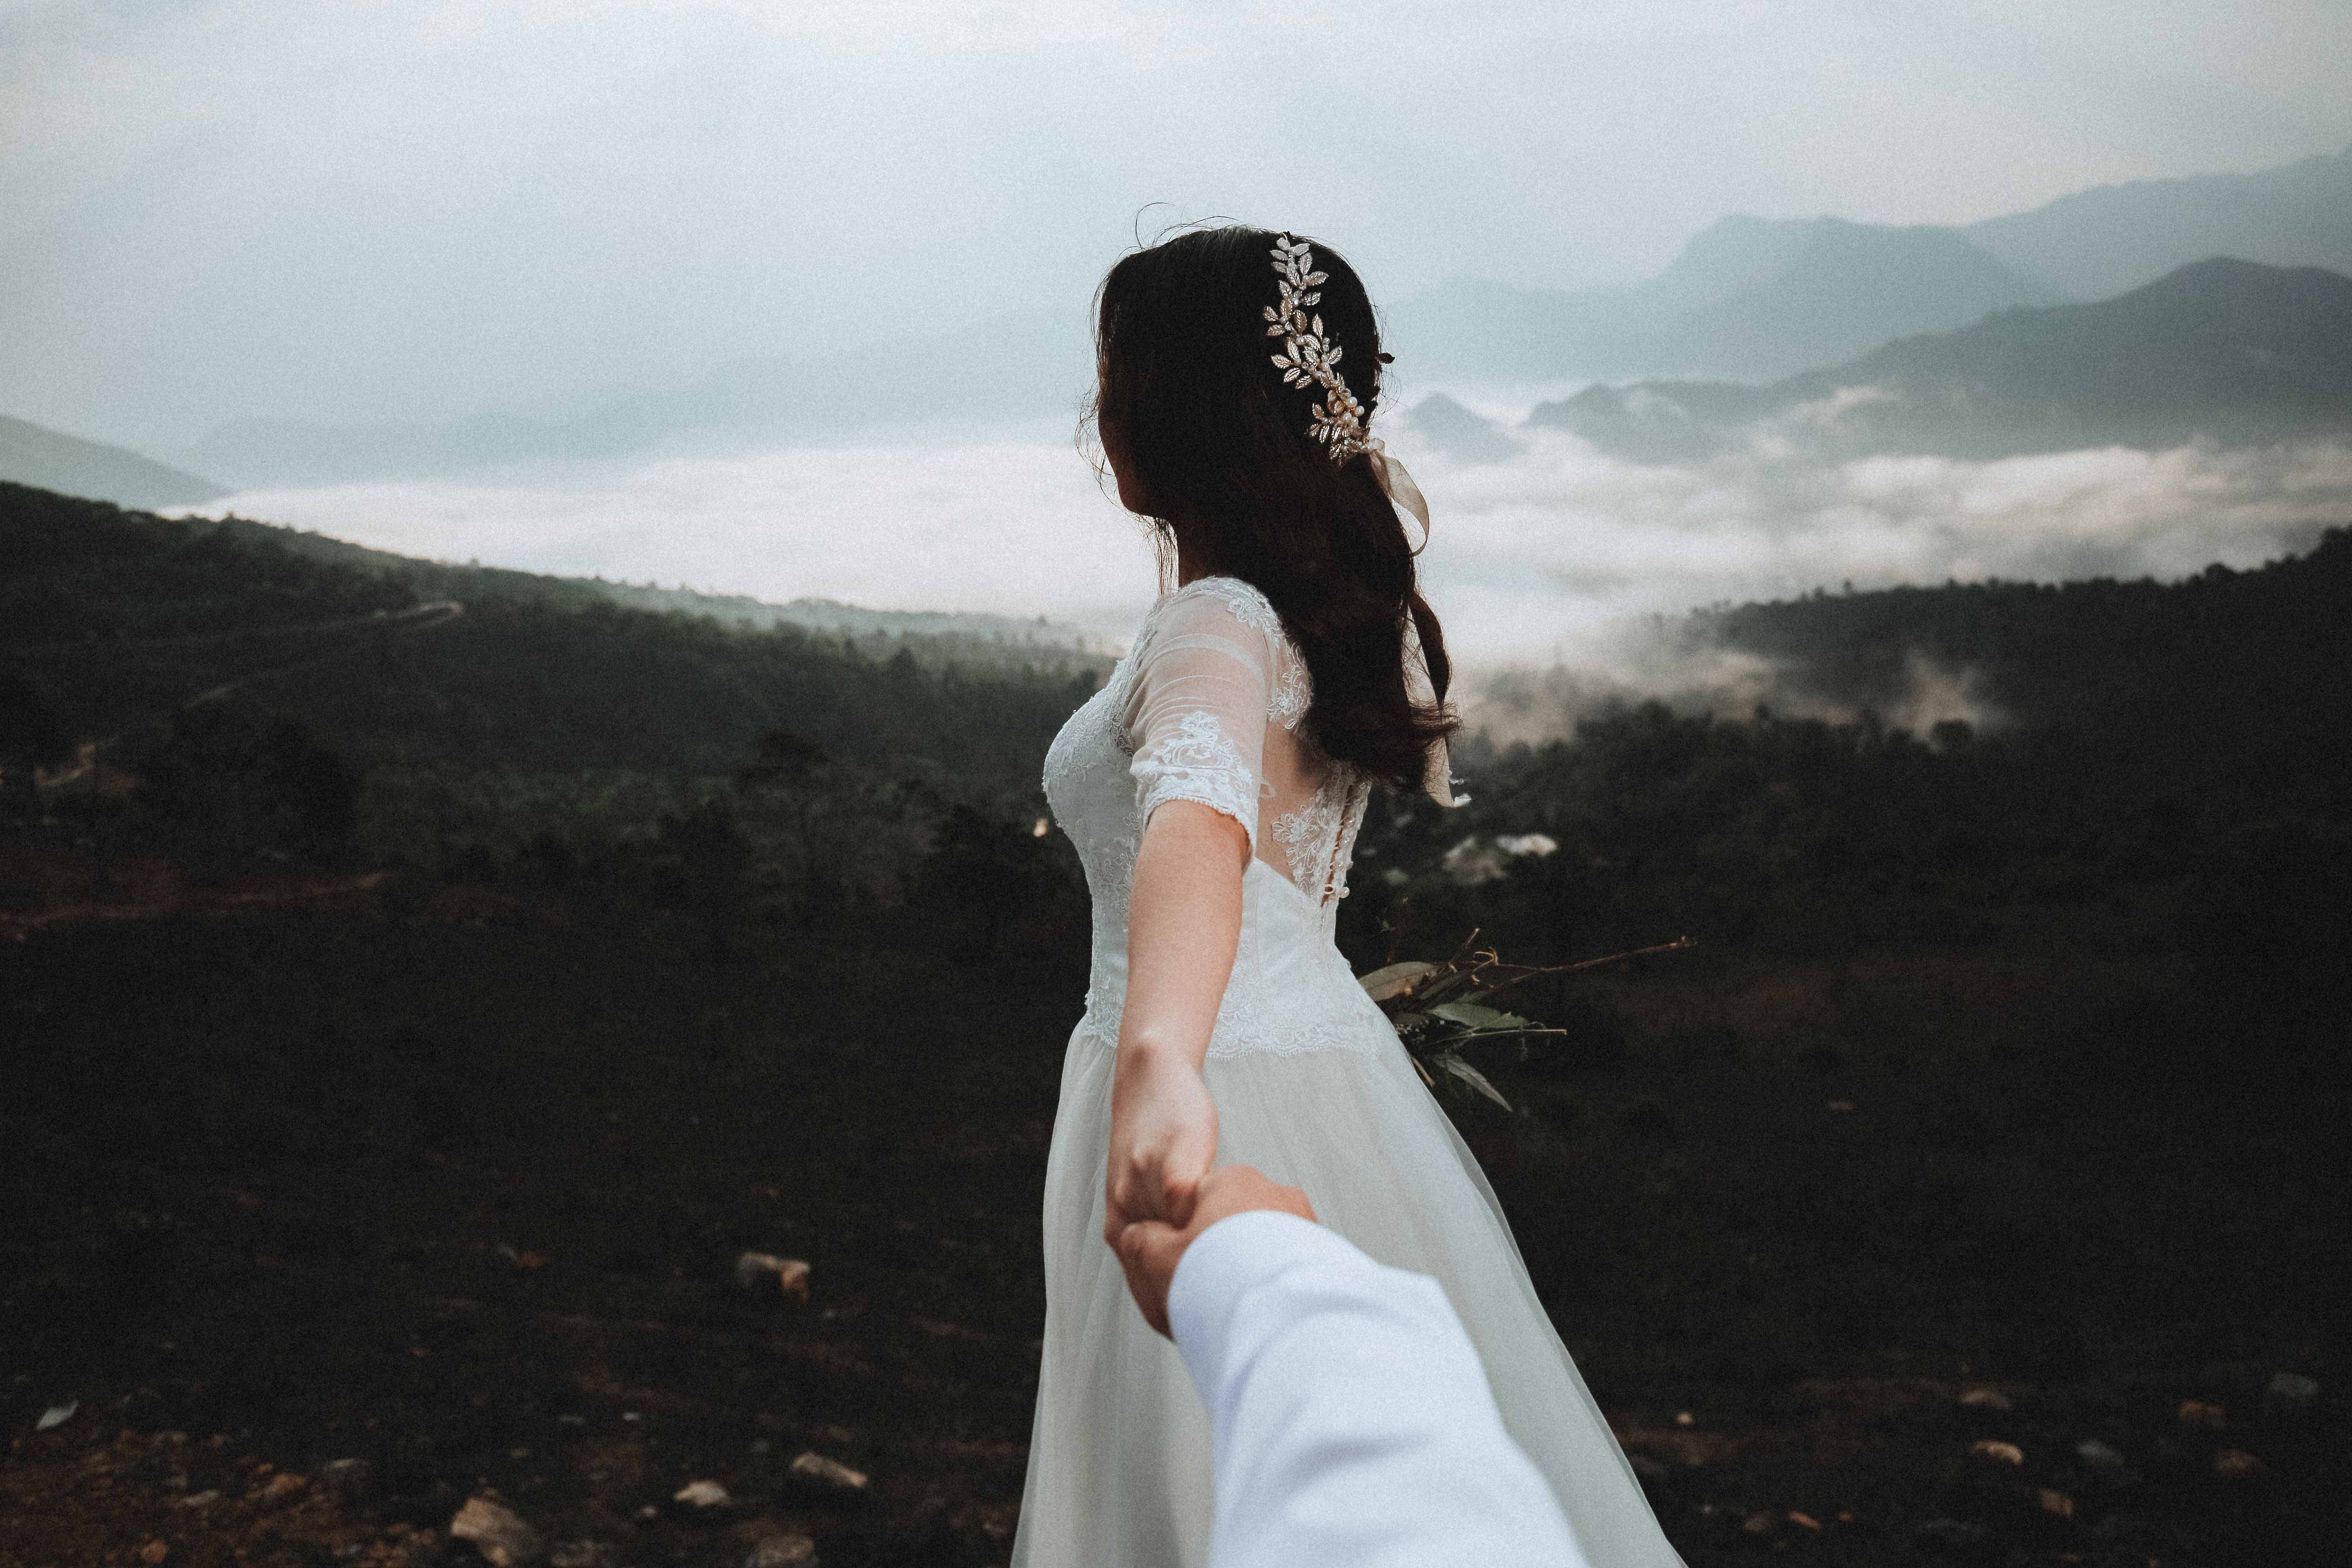 Groom reaches his arm out to beautiful bride on Vietnam mountain